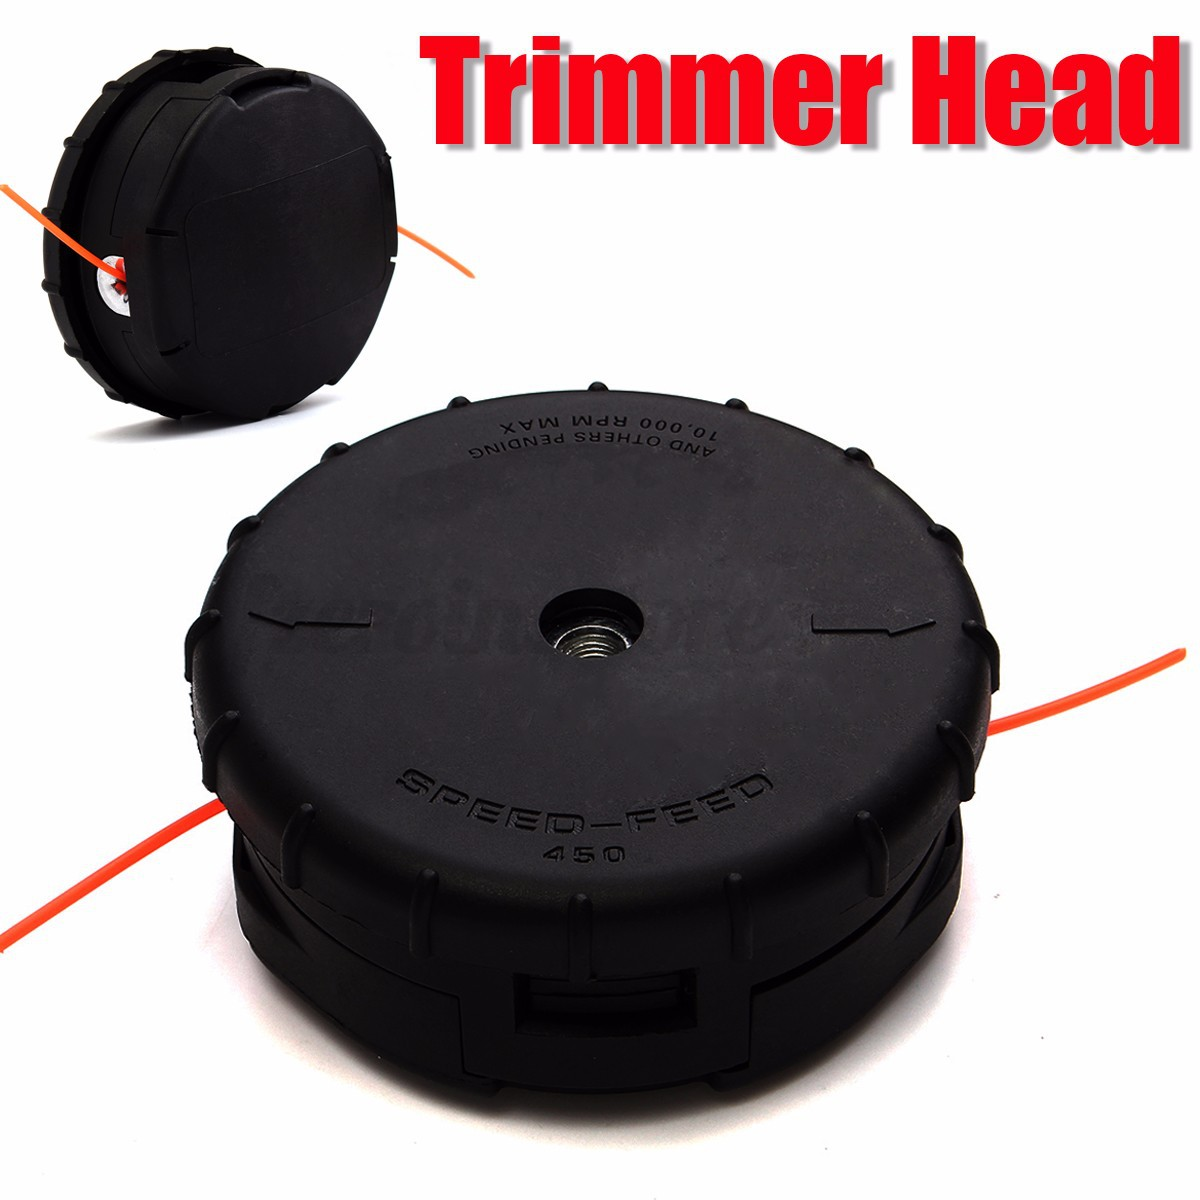 echo speed feed trimmer head instructions